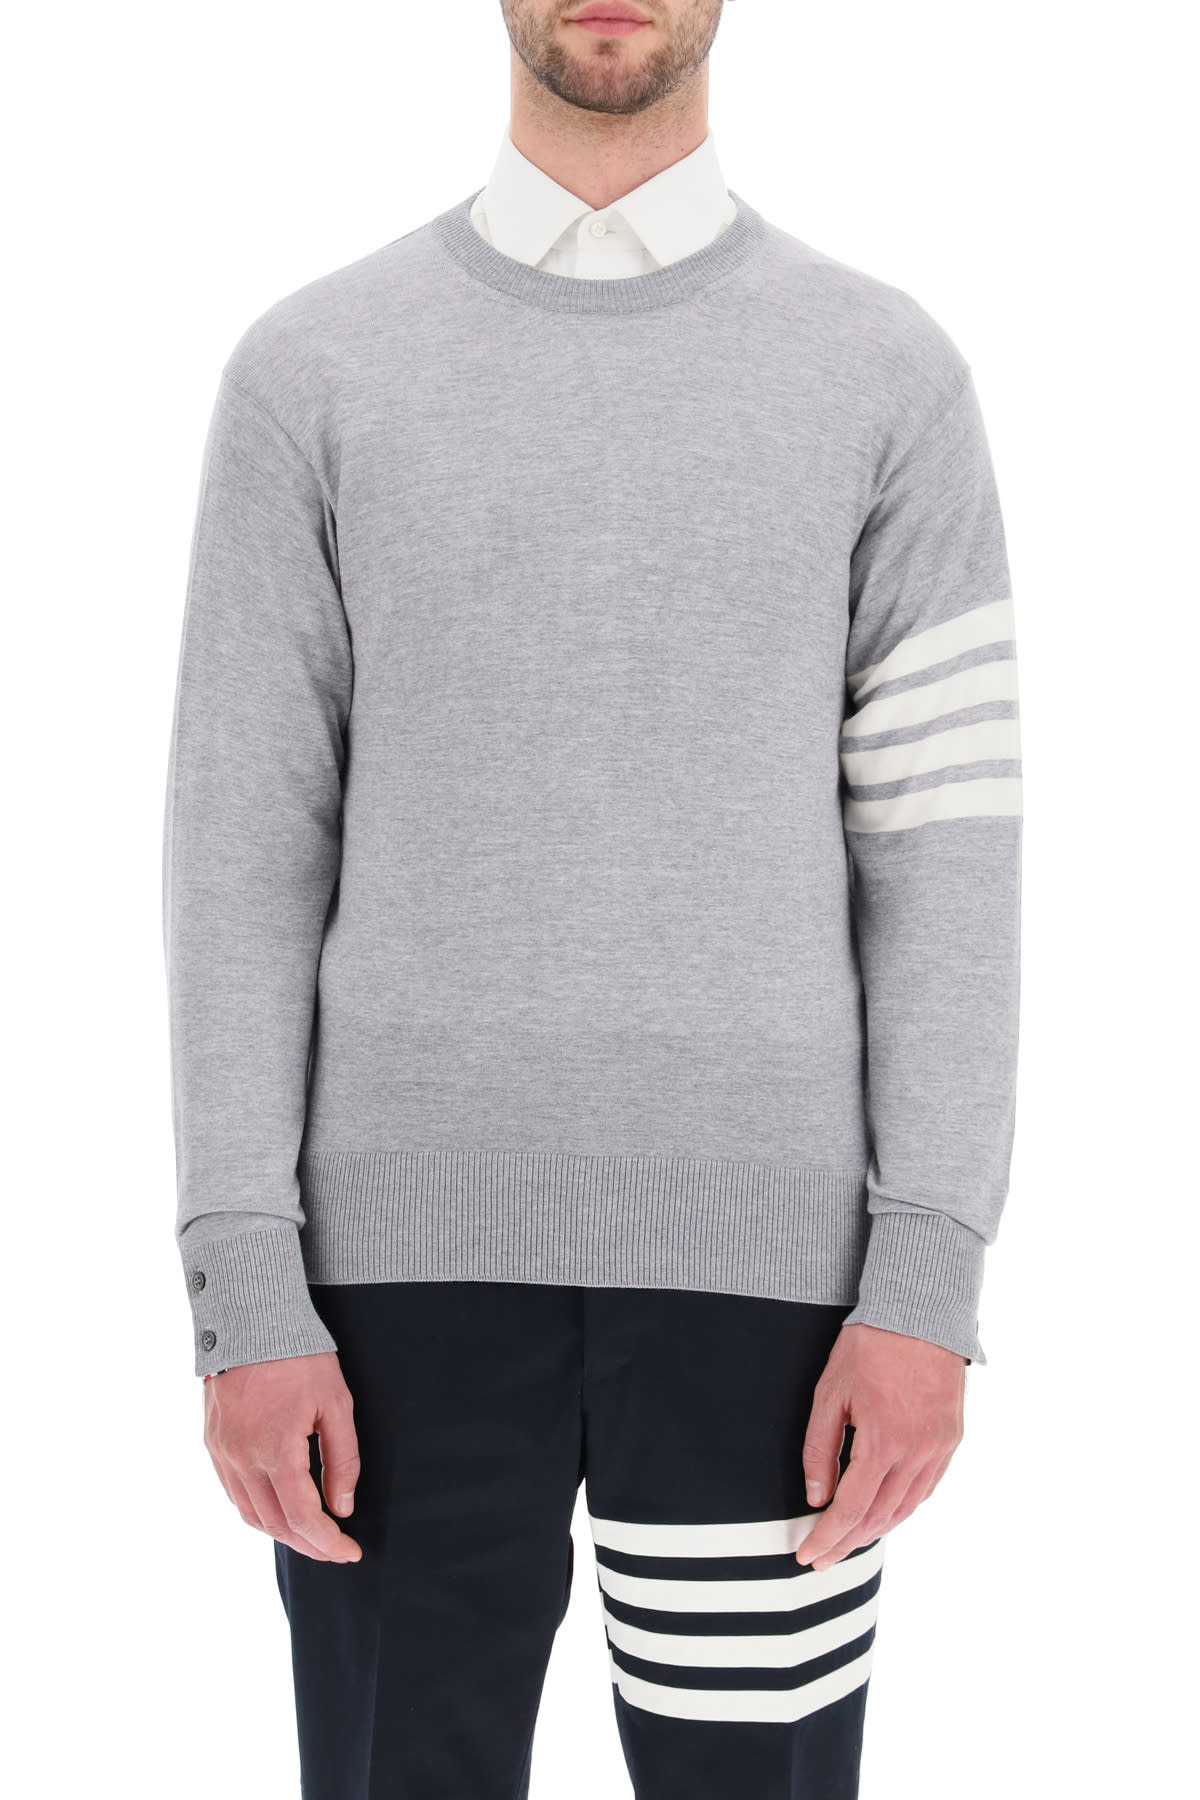 Thom Browne 4-bar Sweater